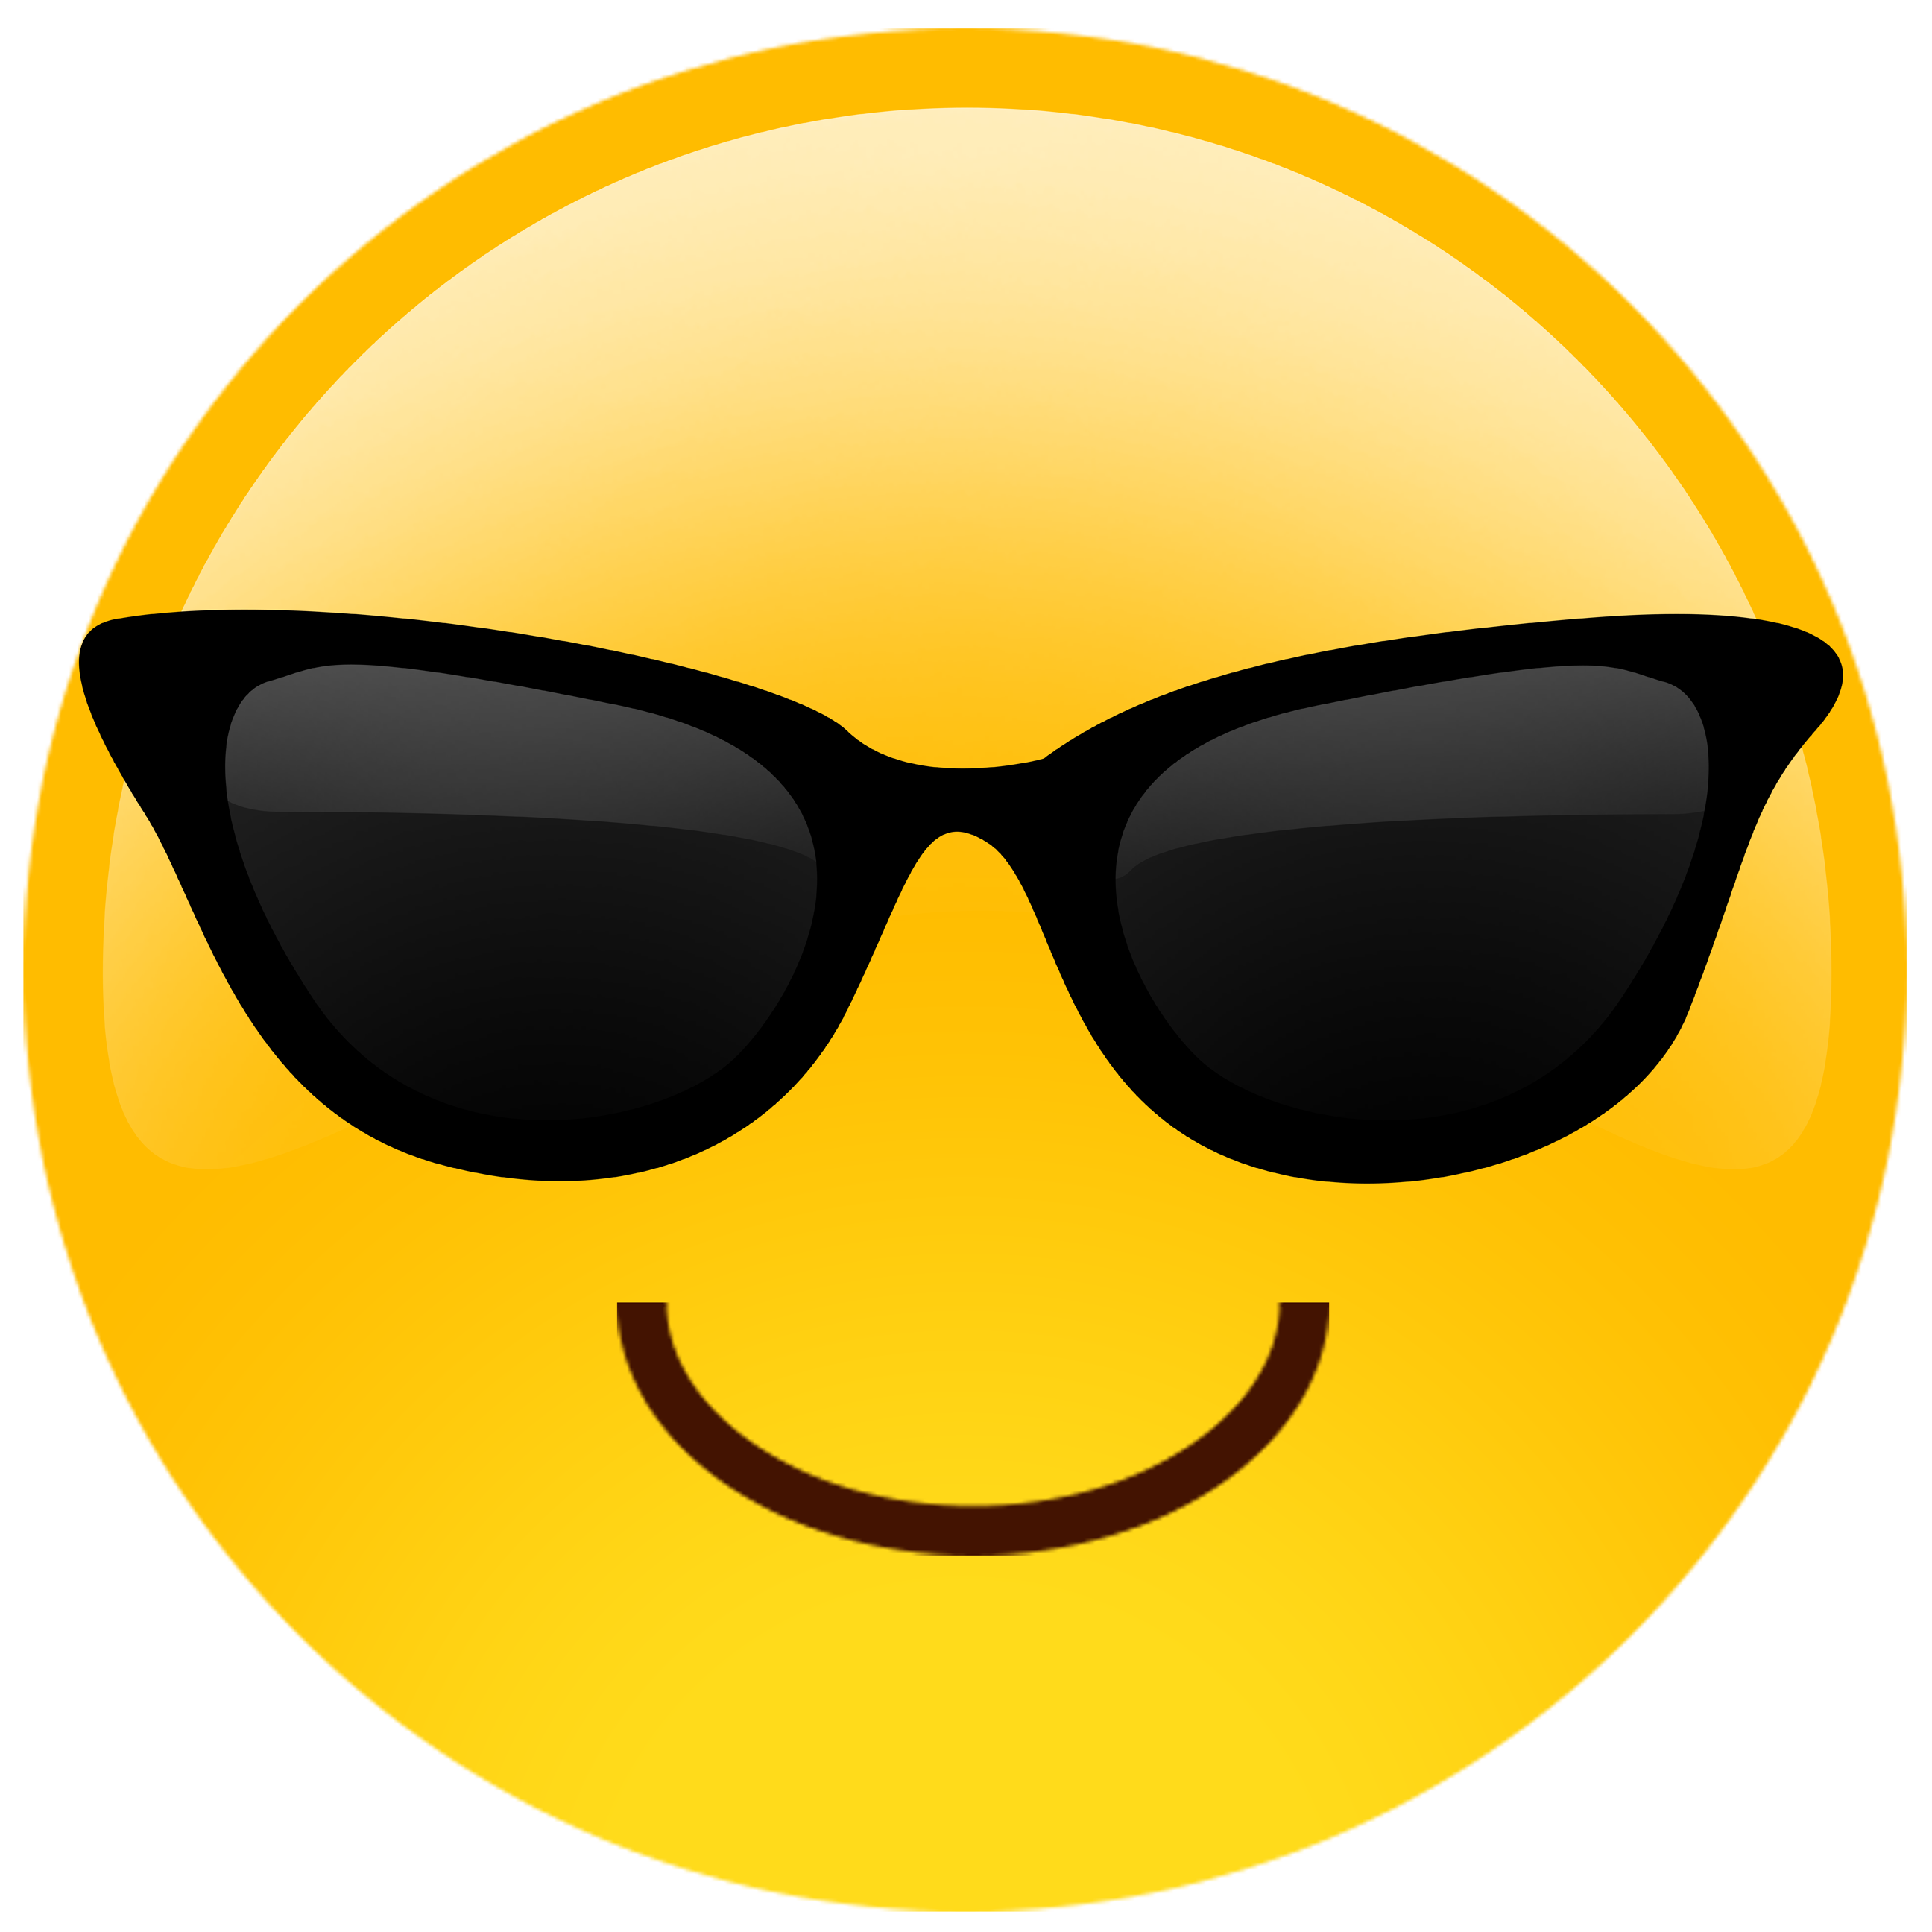 Sunglasses clipart party. Emoji transparent pencil and